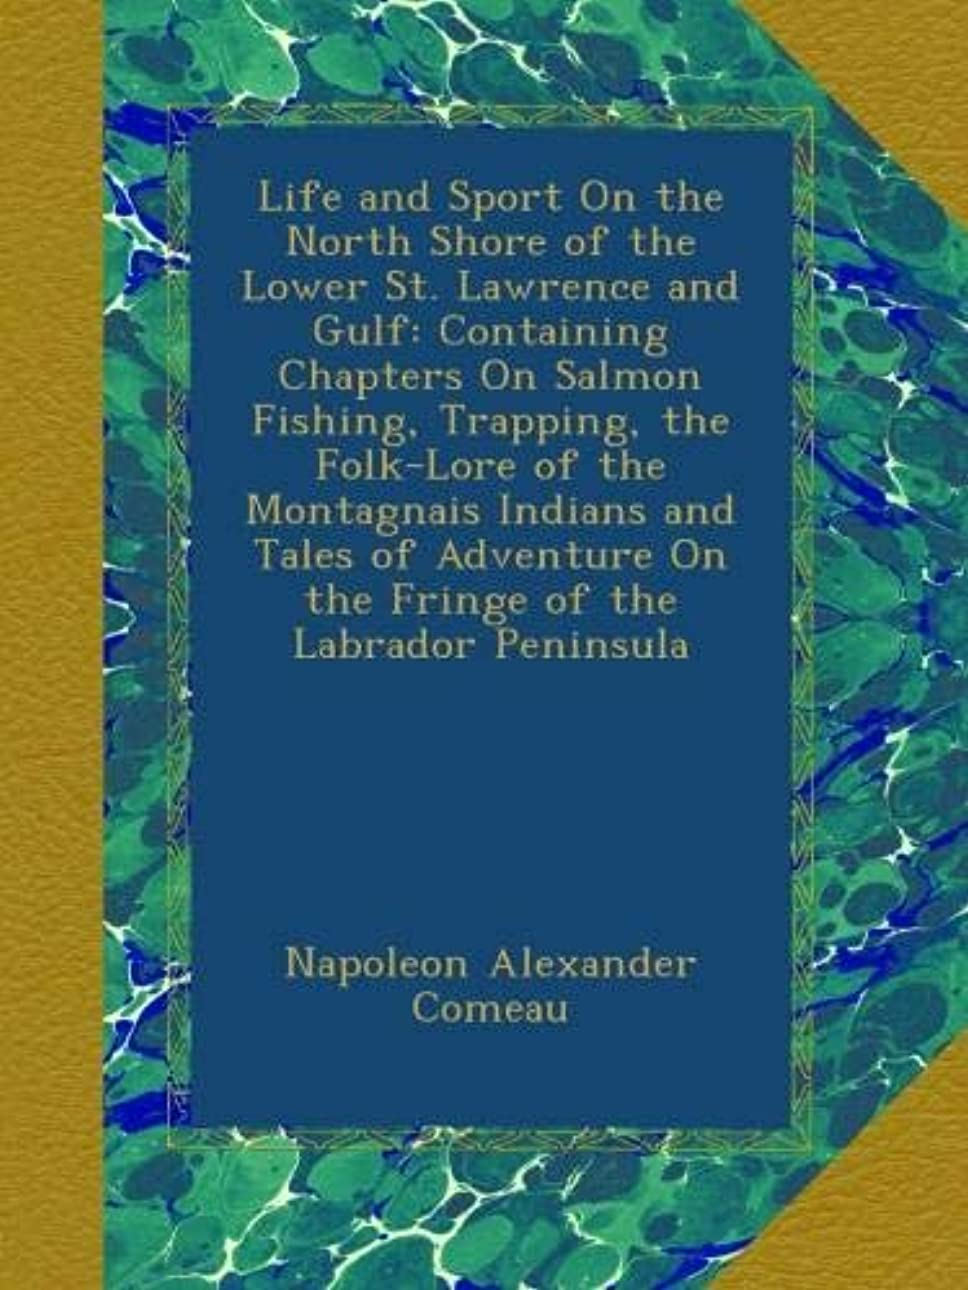 聖歌アサート副詞Life and Sport On the North Shore of the Lower St. Lawrence and Gulf: Containing Chapters On Salmon Fishing, Trapping, the Folk-Lore of the Montagnais Indians and Tales of Adventure On the Fringe of the Labrador Peninsula